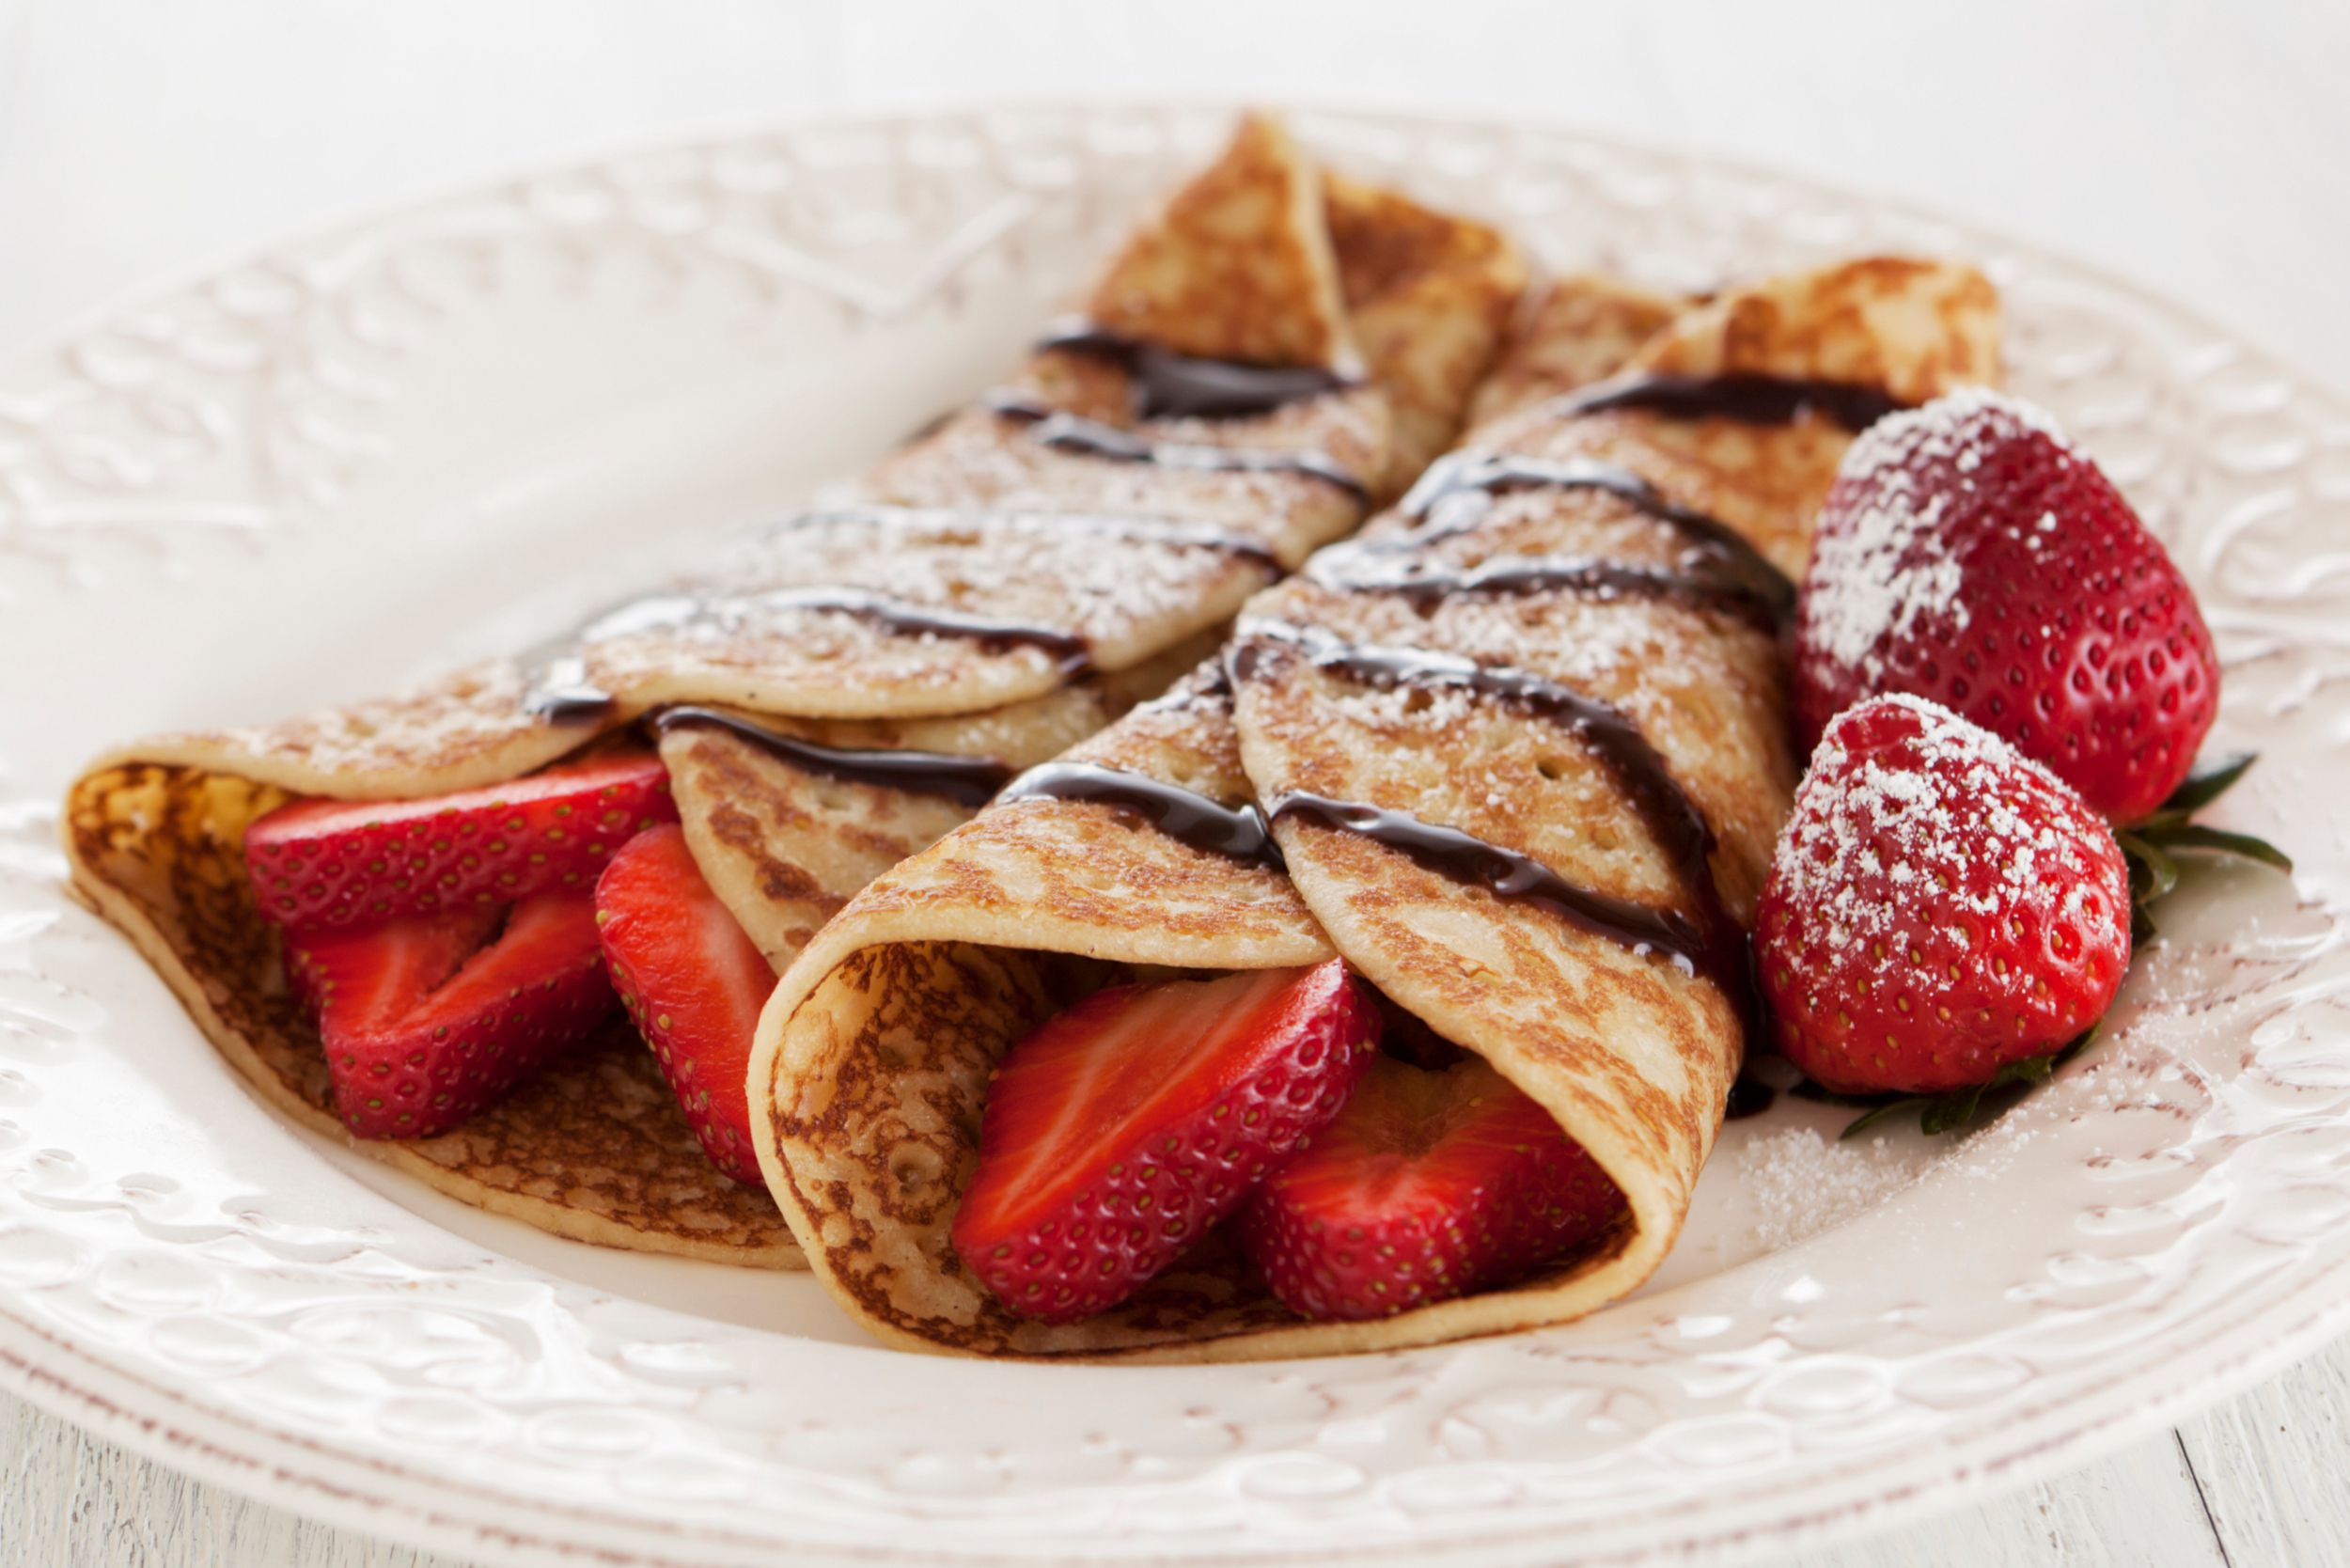 Basic Crepe Recipe (Sweet or Savory)